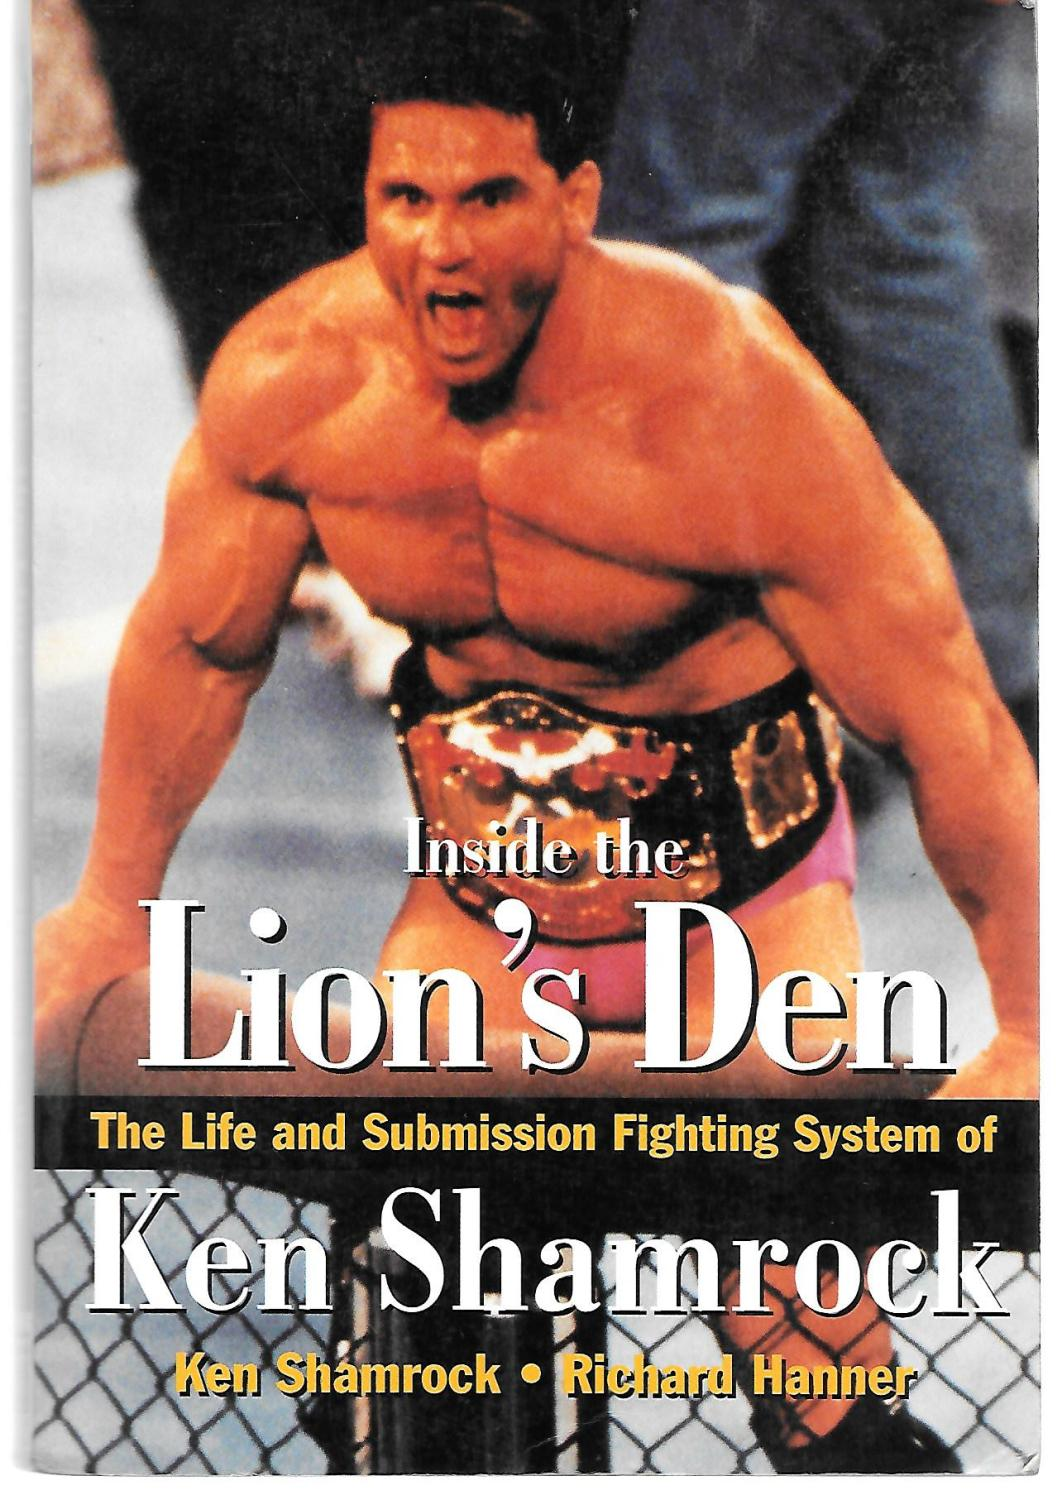 Inside The Lion's Den The Life And Submission Fighting System Of Ken Shamrock - Ken Shamrock And Richard Hanner